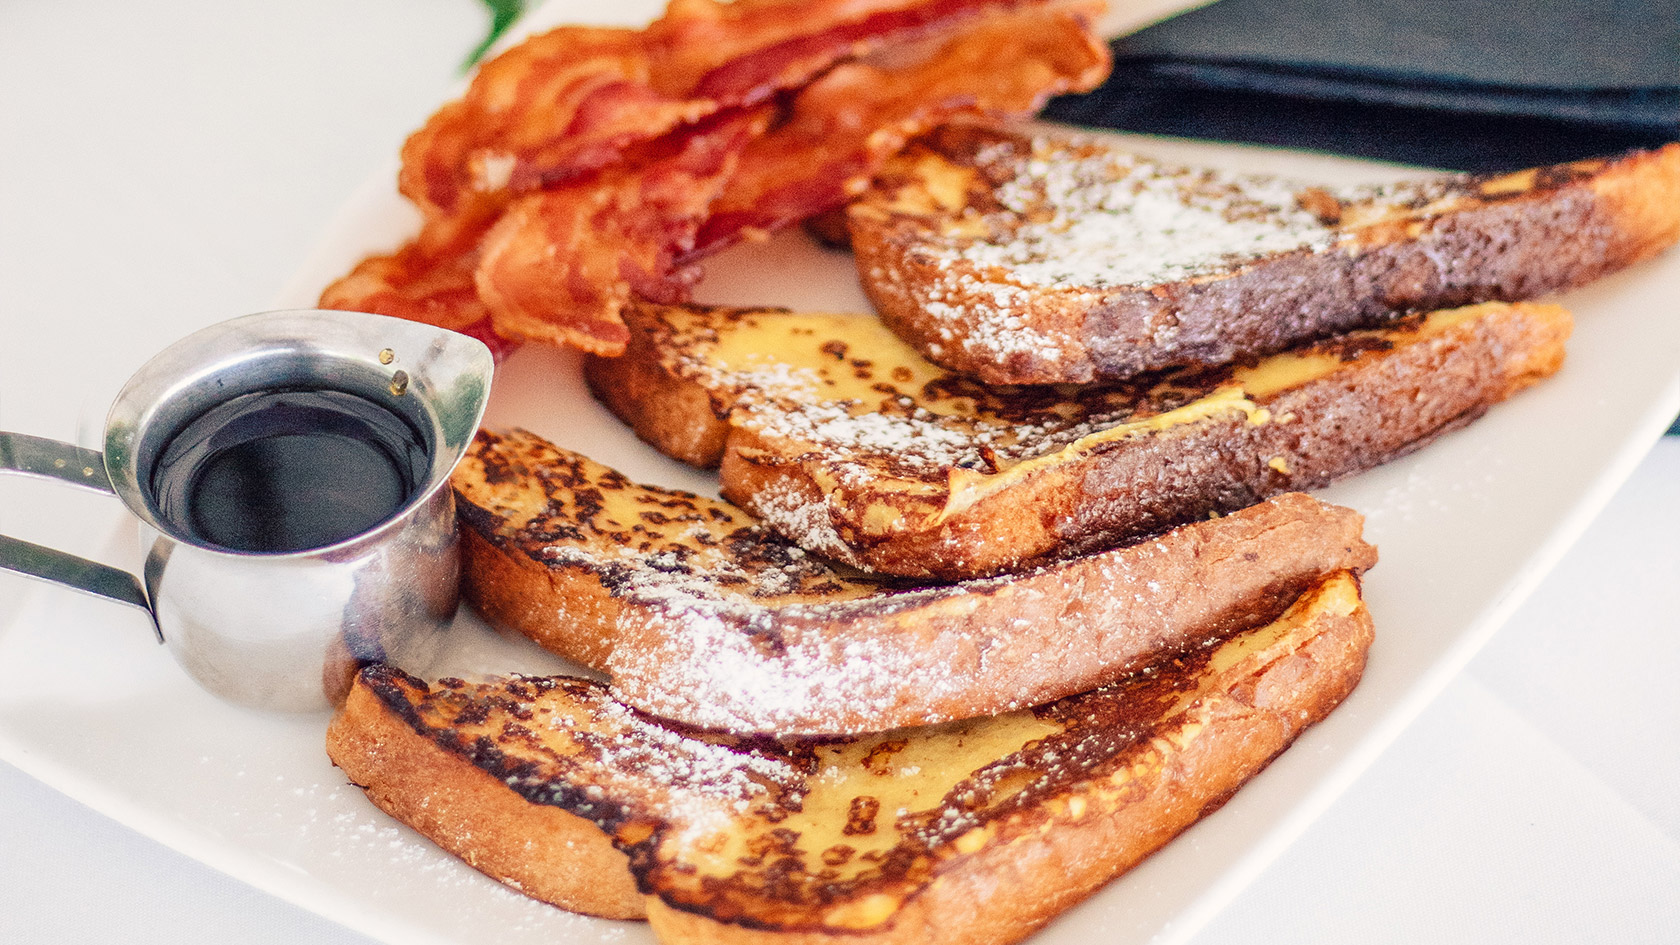 French toast on a plate with bacon on the si